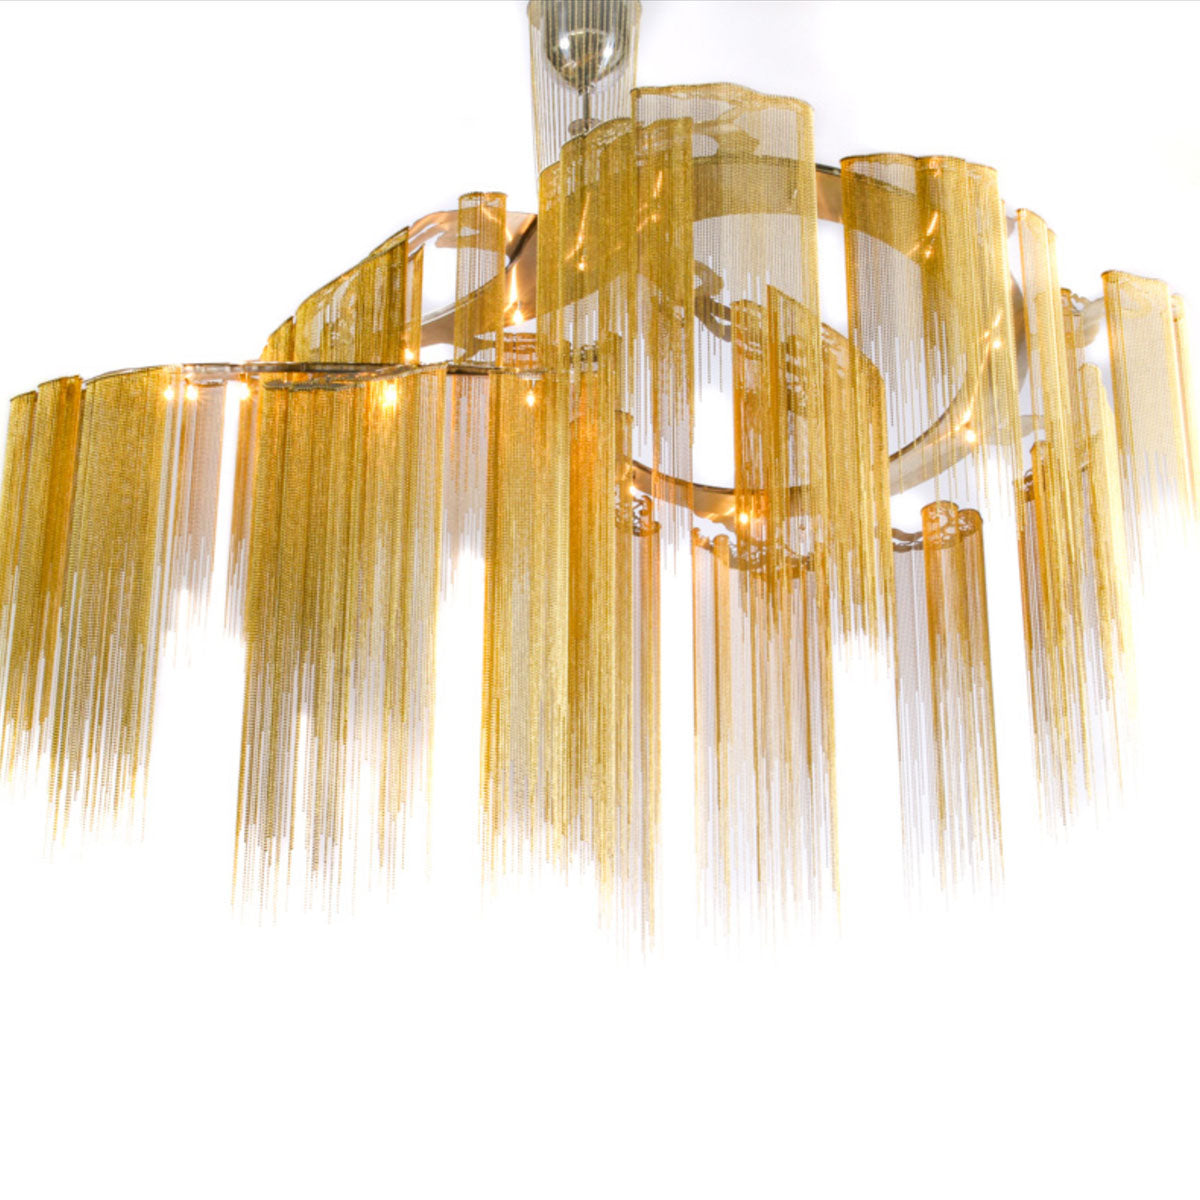 SPIRAL TREES ART PIECE CHANDELIER